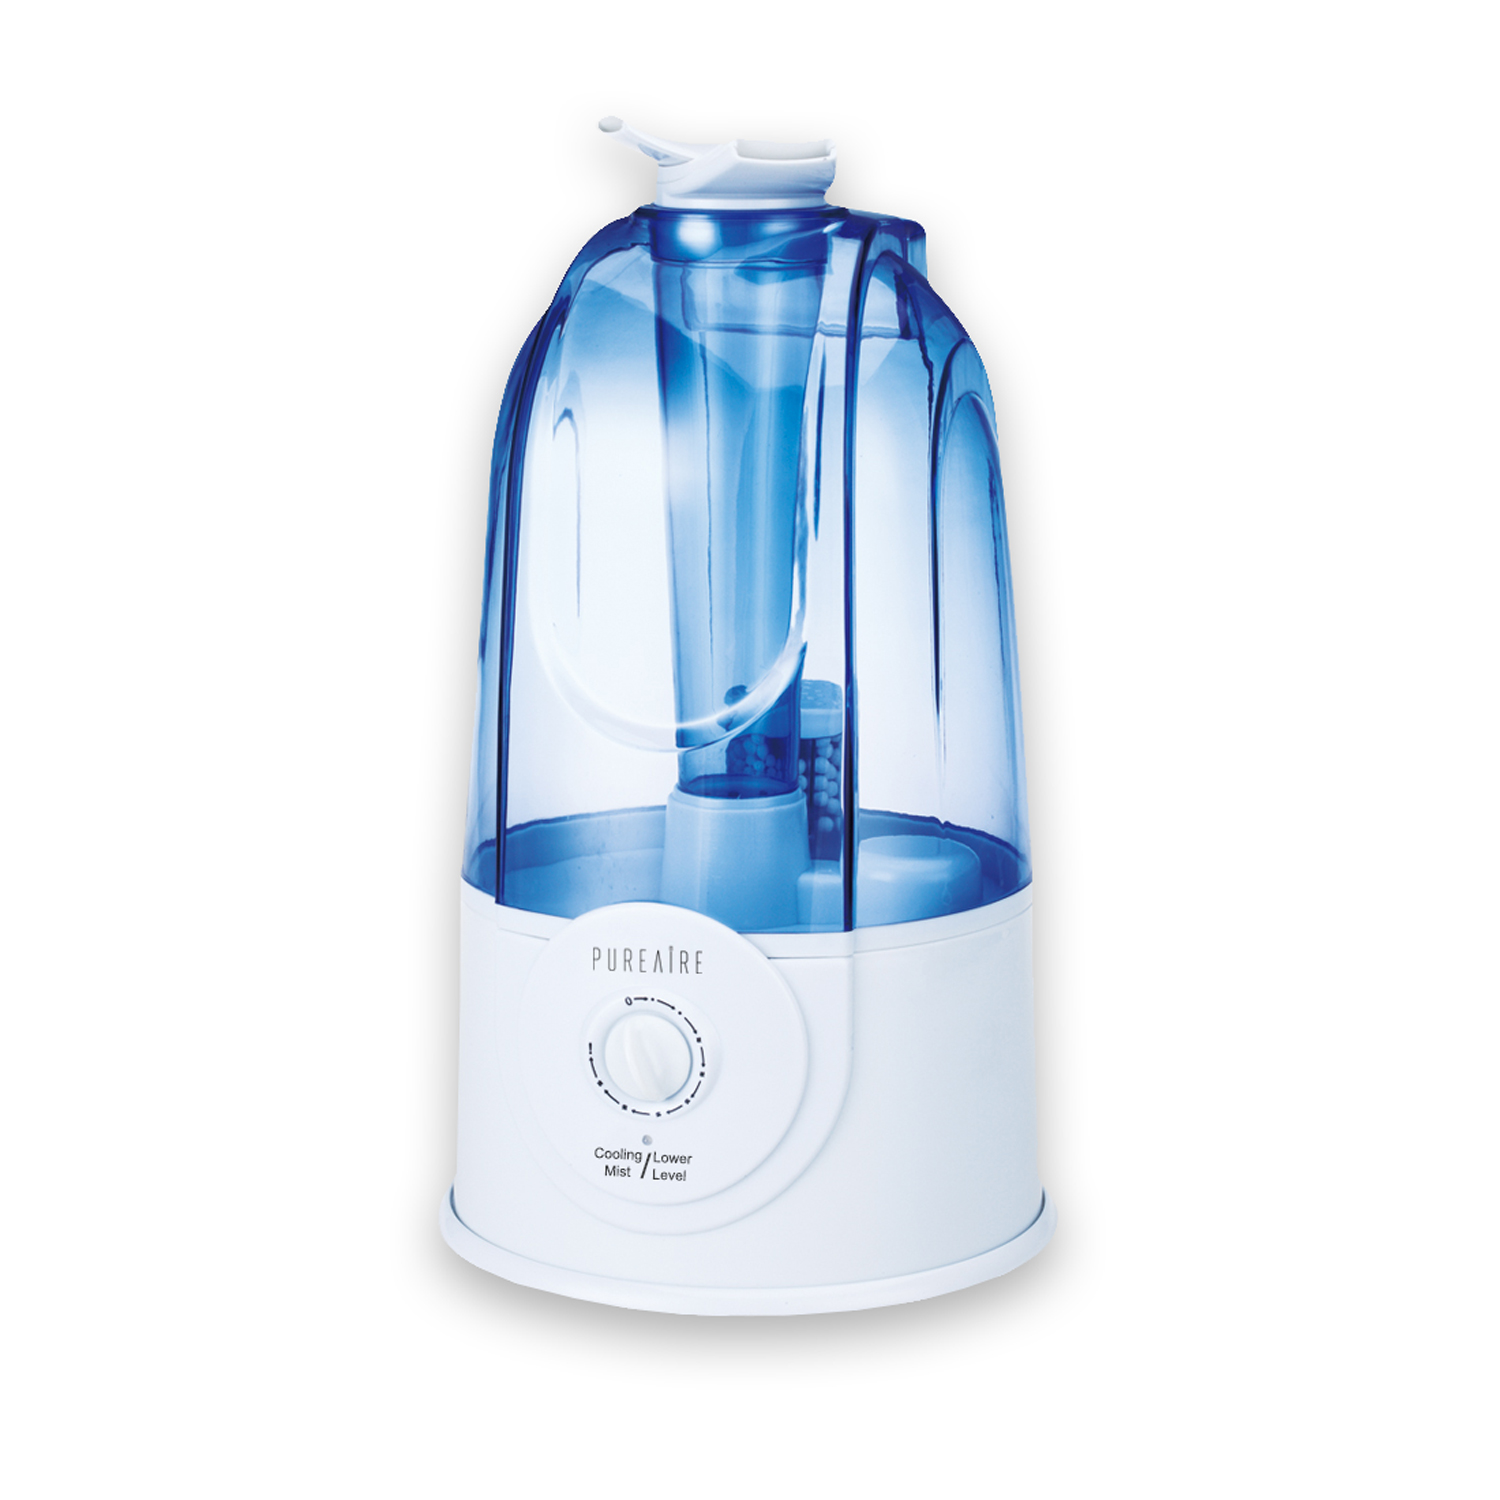 Humidifier PureAire Air Revitalisers and Humidifiers Offical Website #167AB5